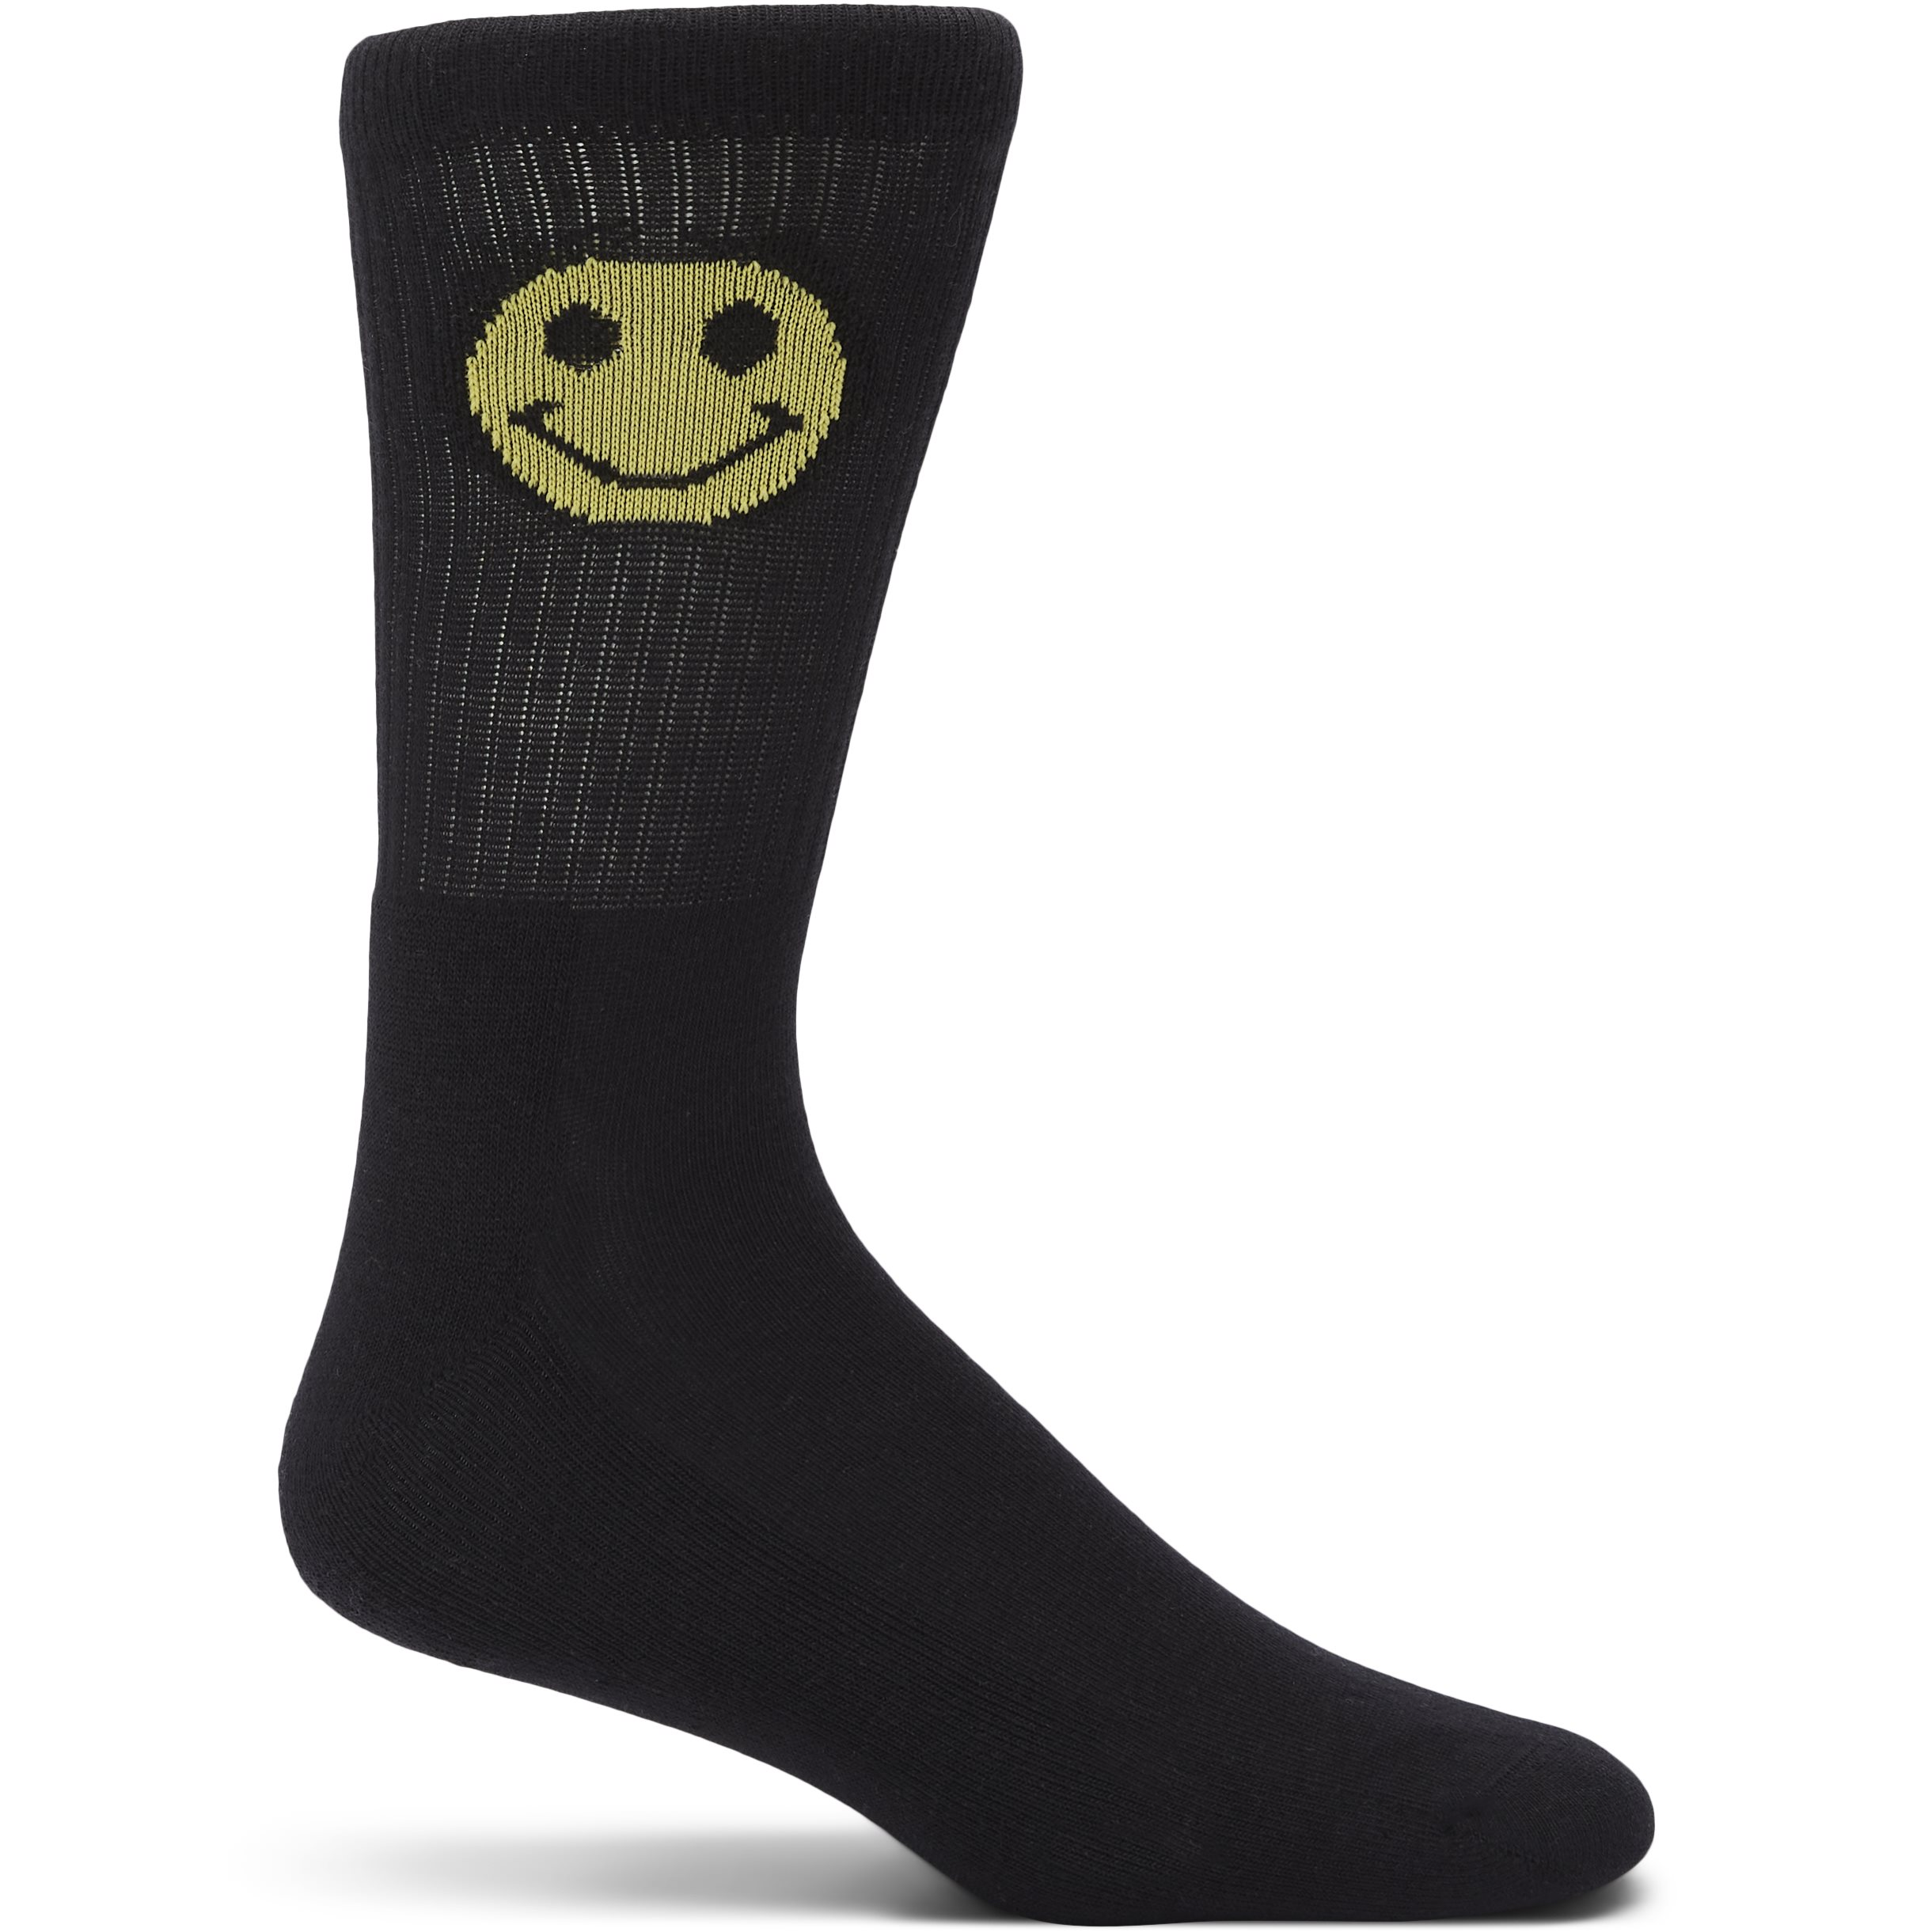 1-Pack Face Tennis Socks - Strømper - Sort